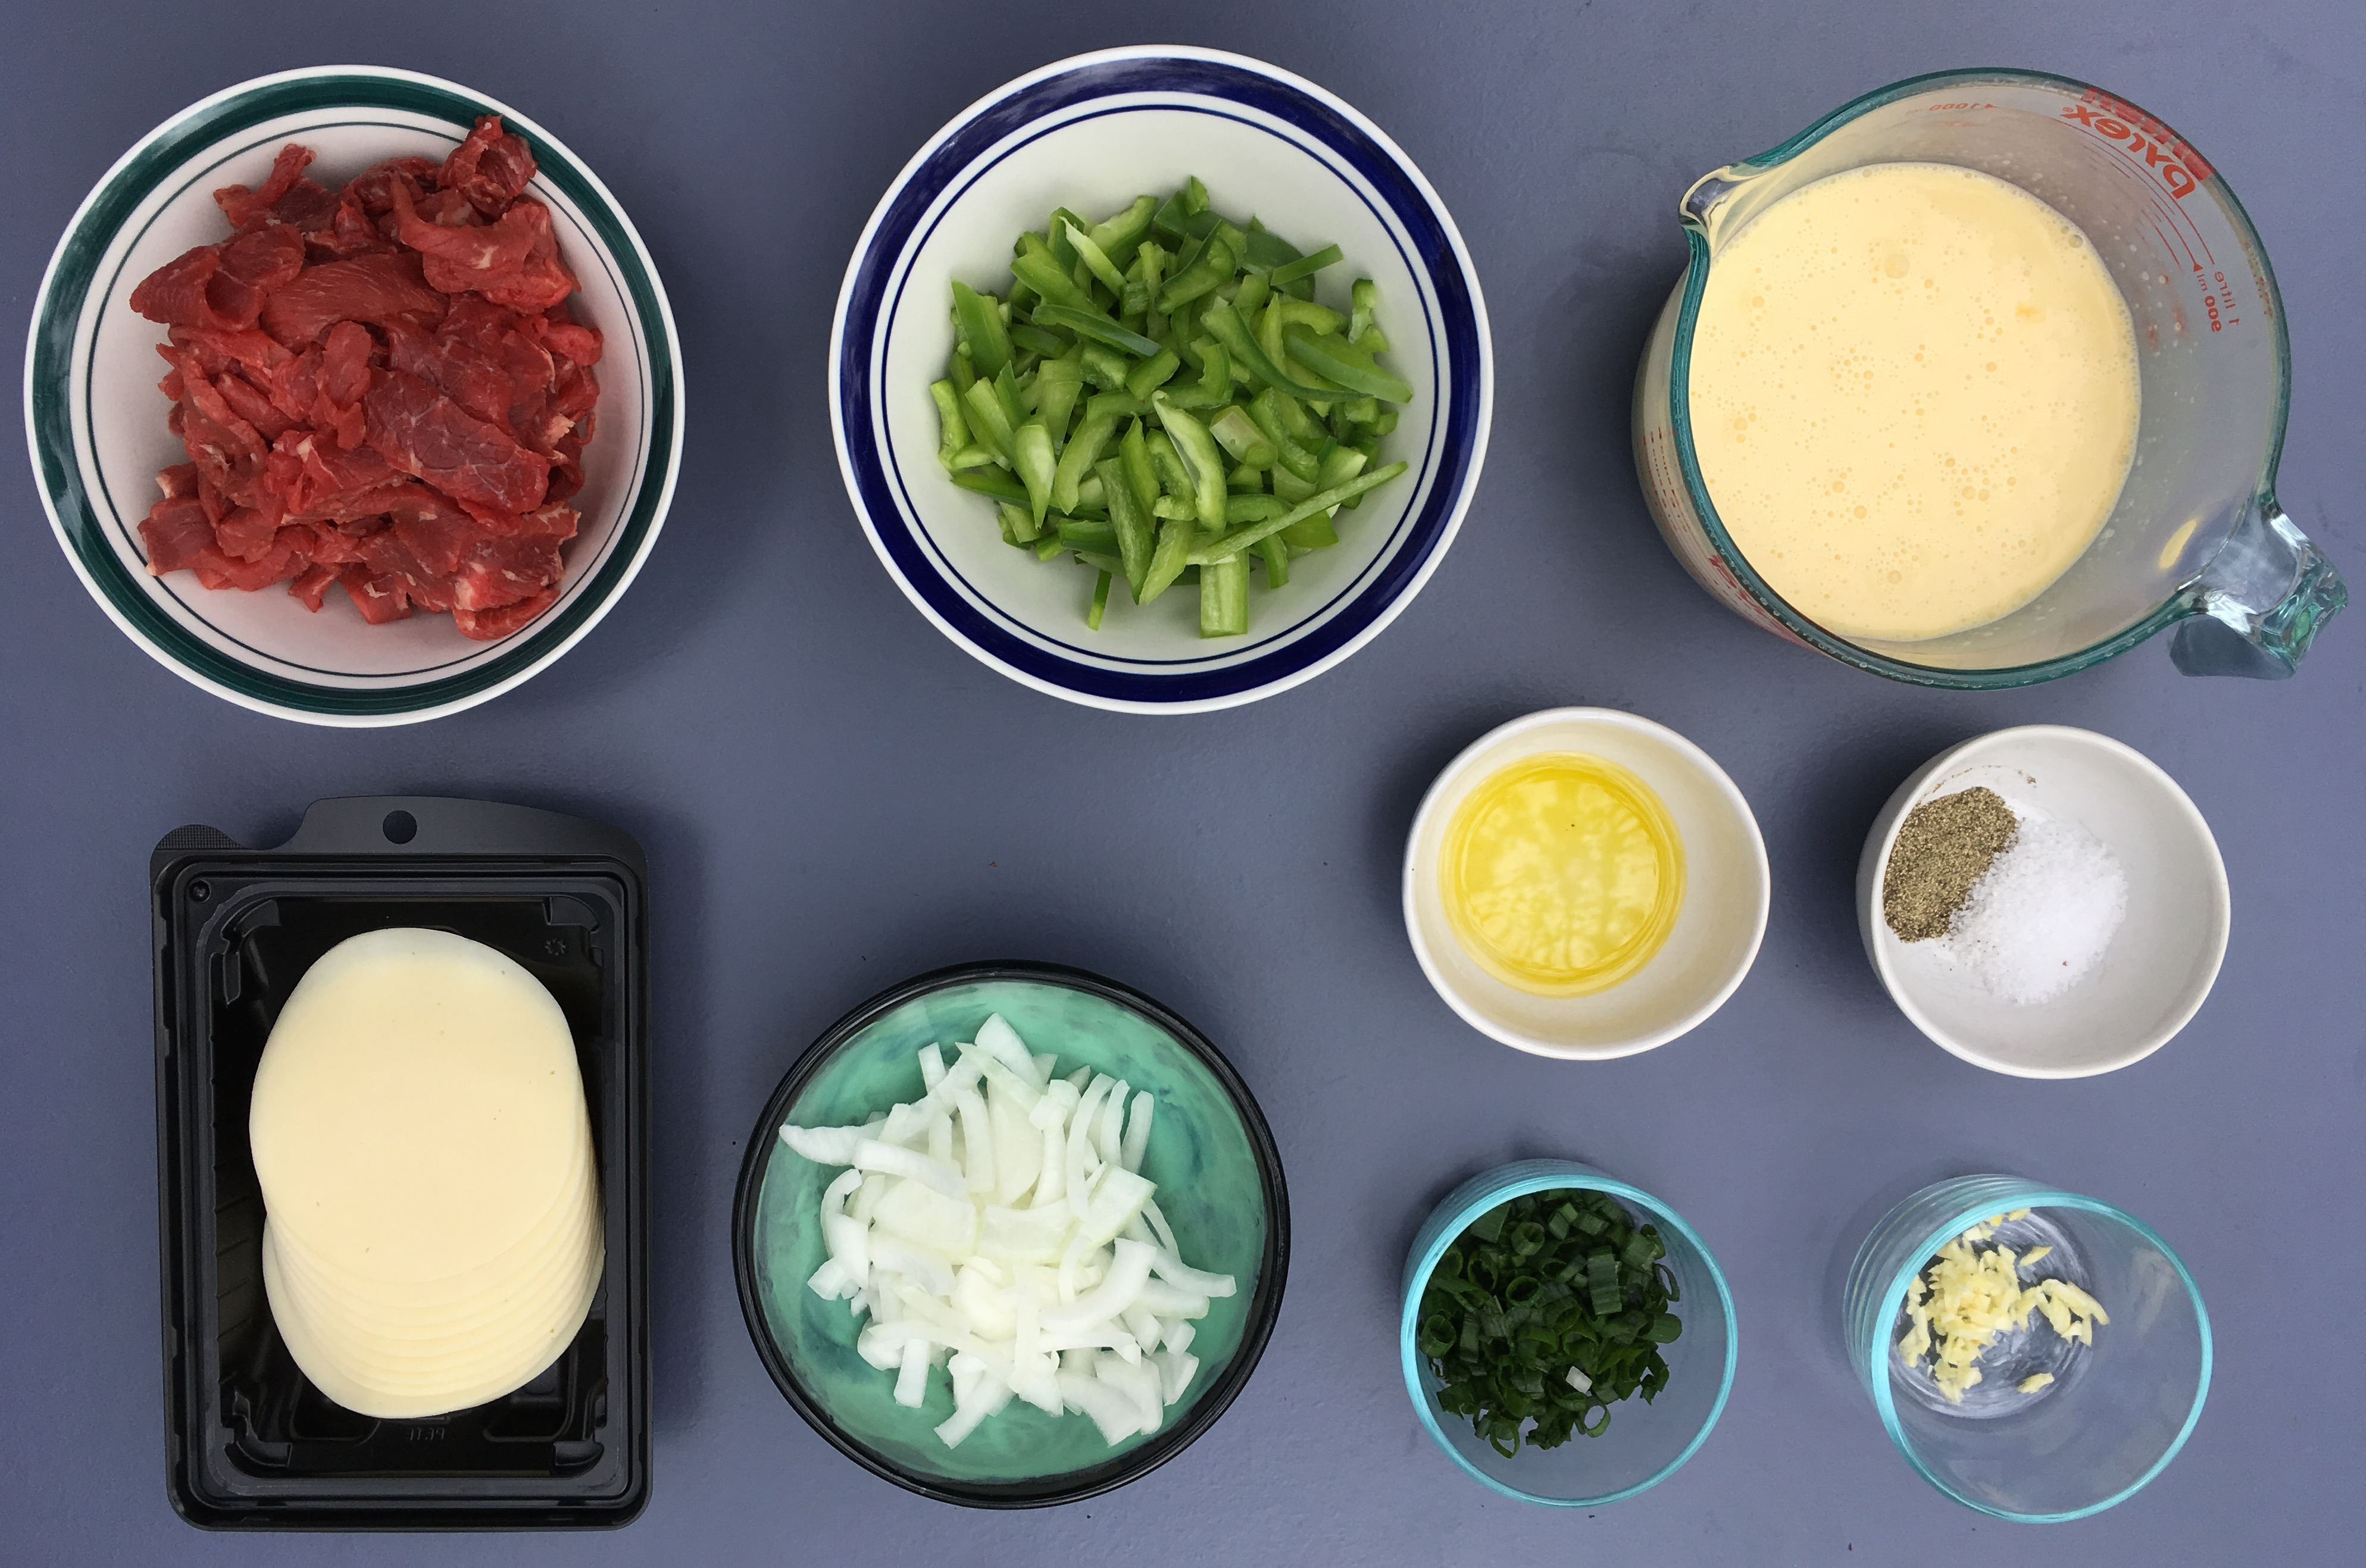 Low Carb Philly Cheesesteak Casserole Ingredients - Prepped